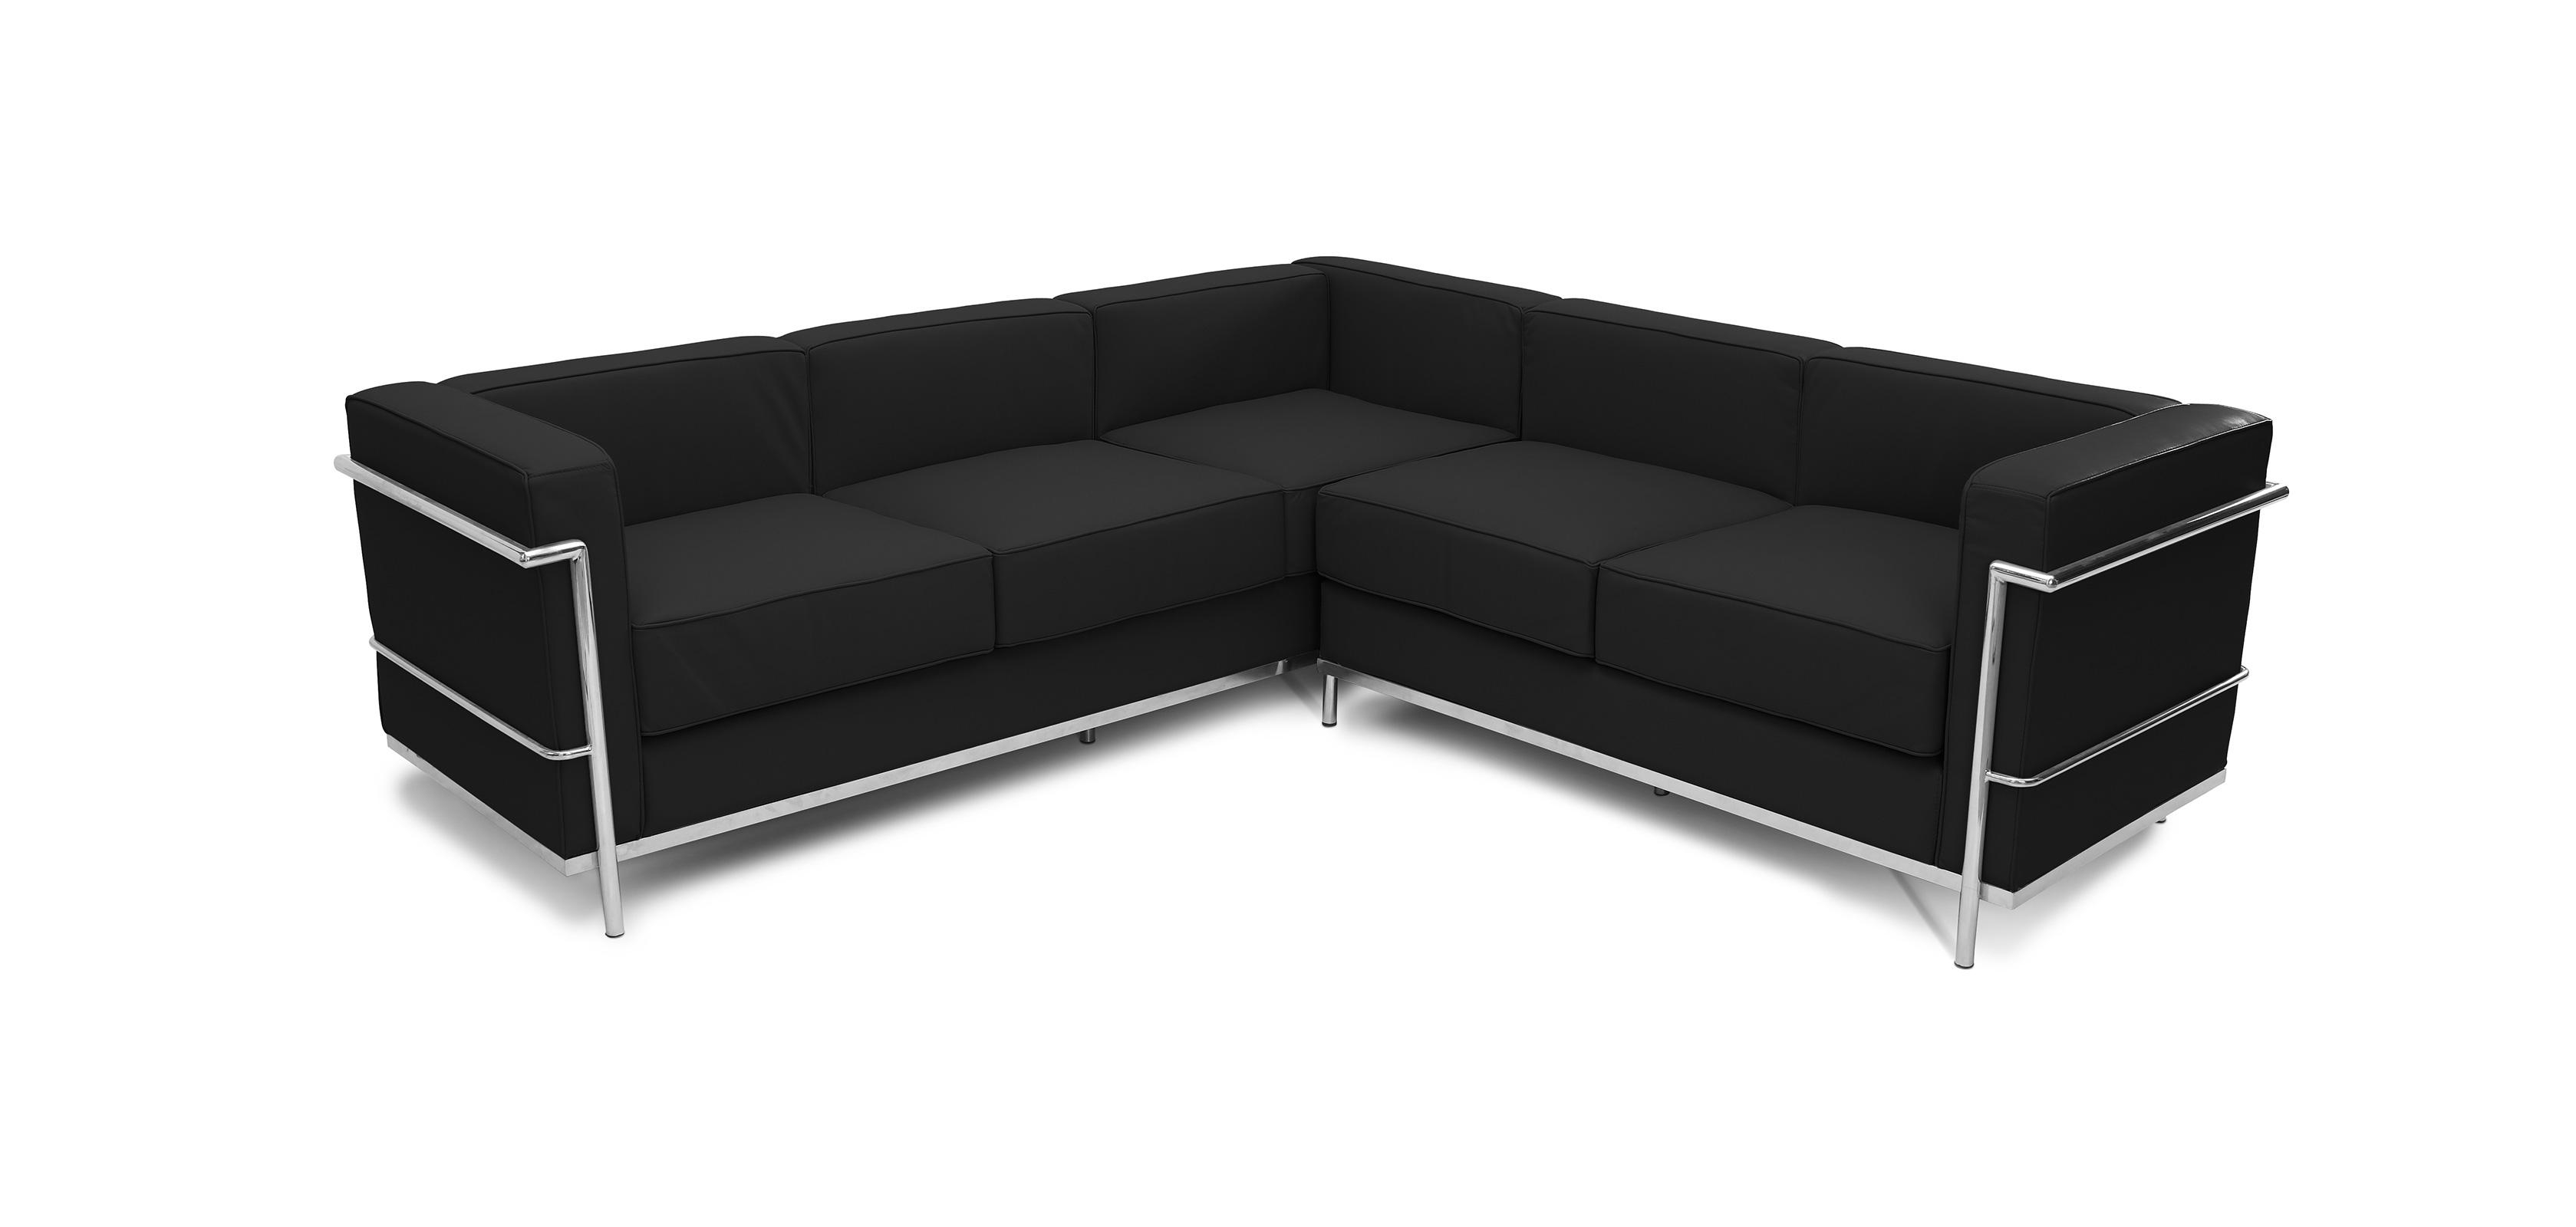 Leather Corner Sofa Designs Top Preferred Home Design With Regard To Leather Corner Sofas (View 11 of 20)